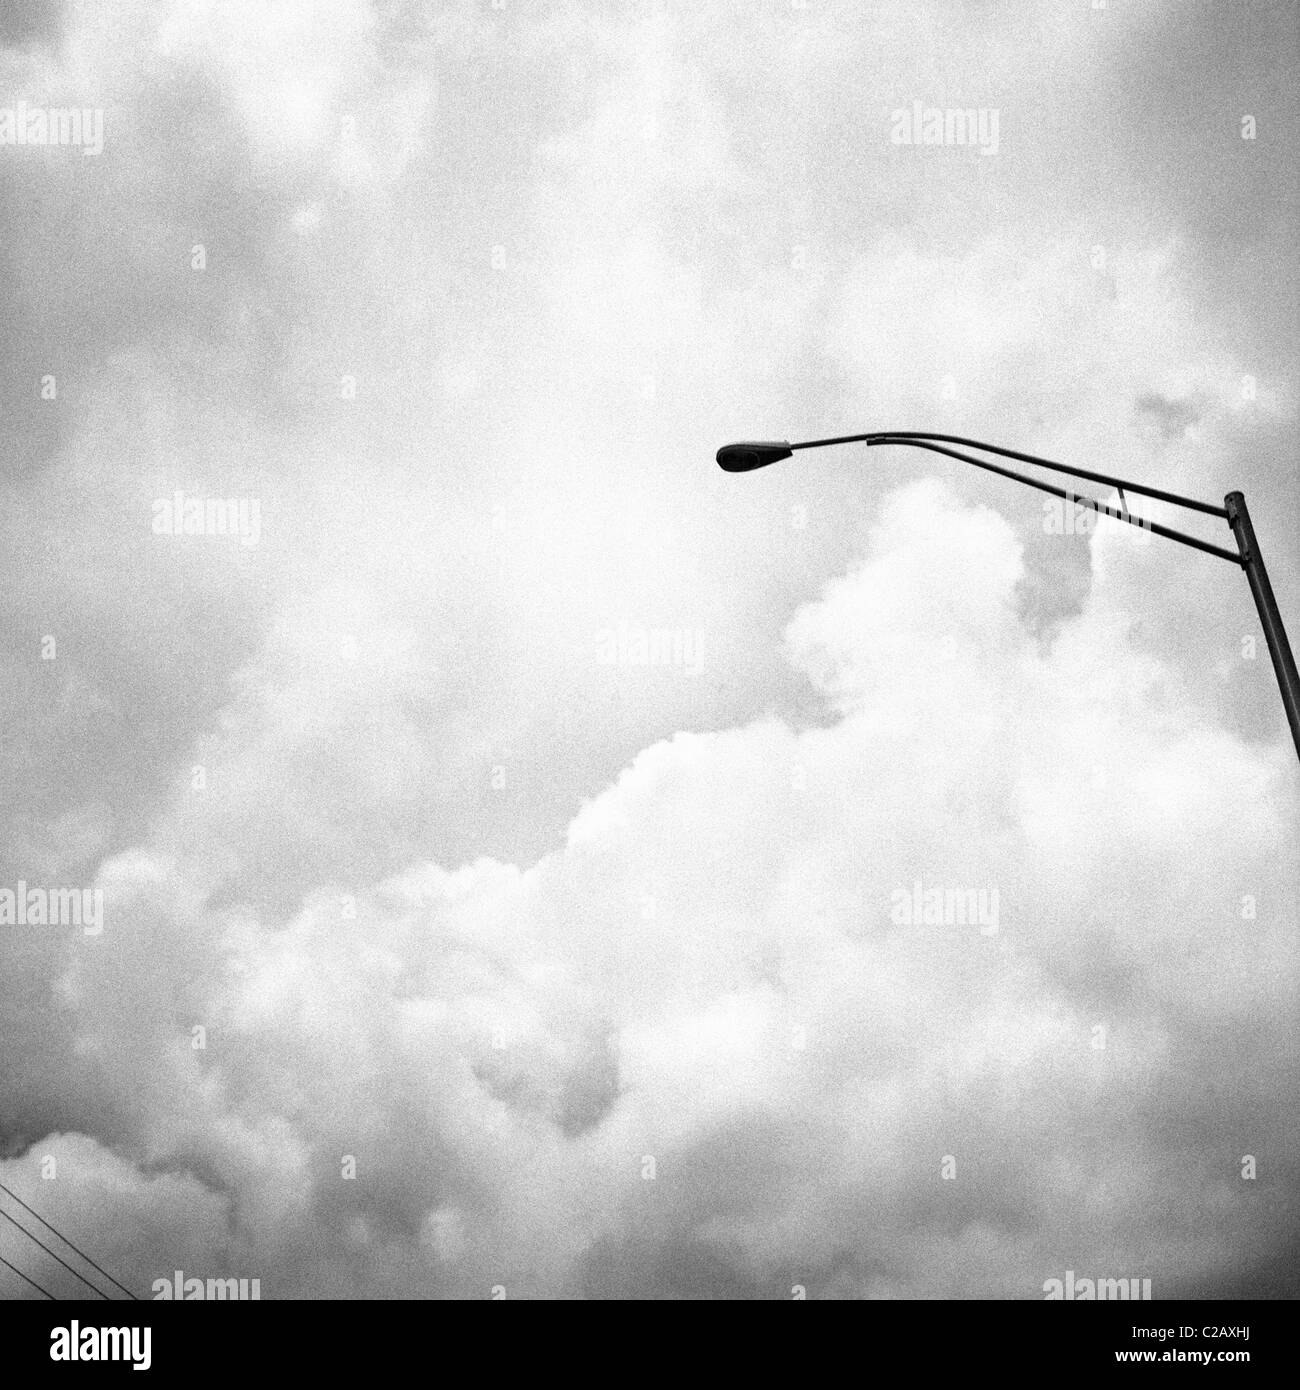 Street lamp against stormy sky - Stock Image